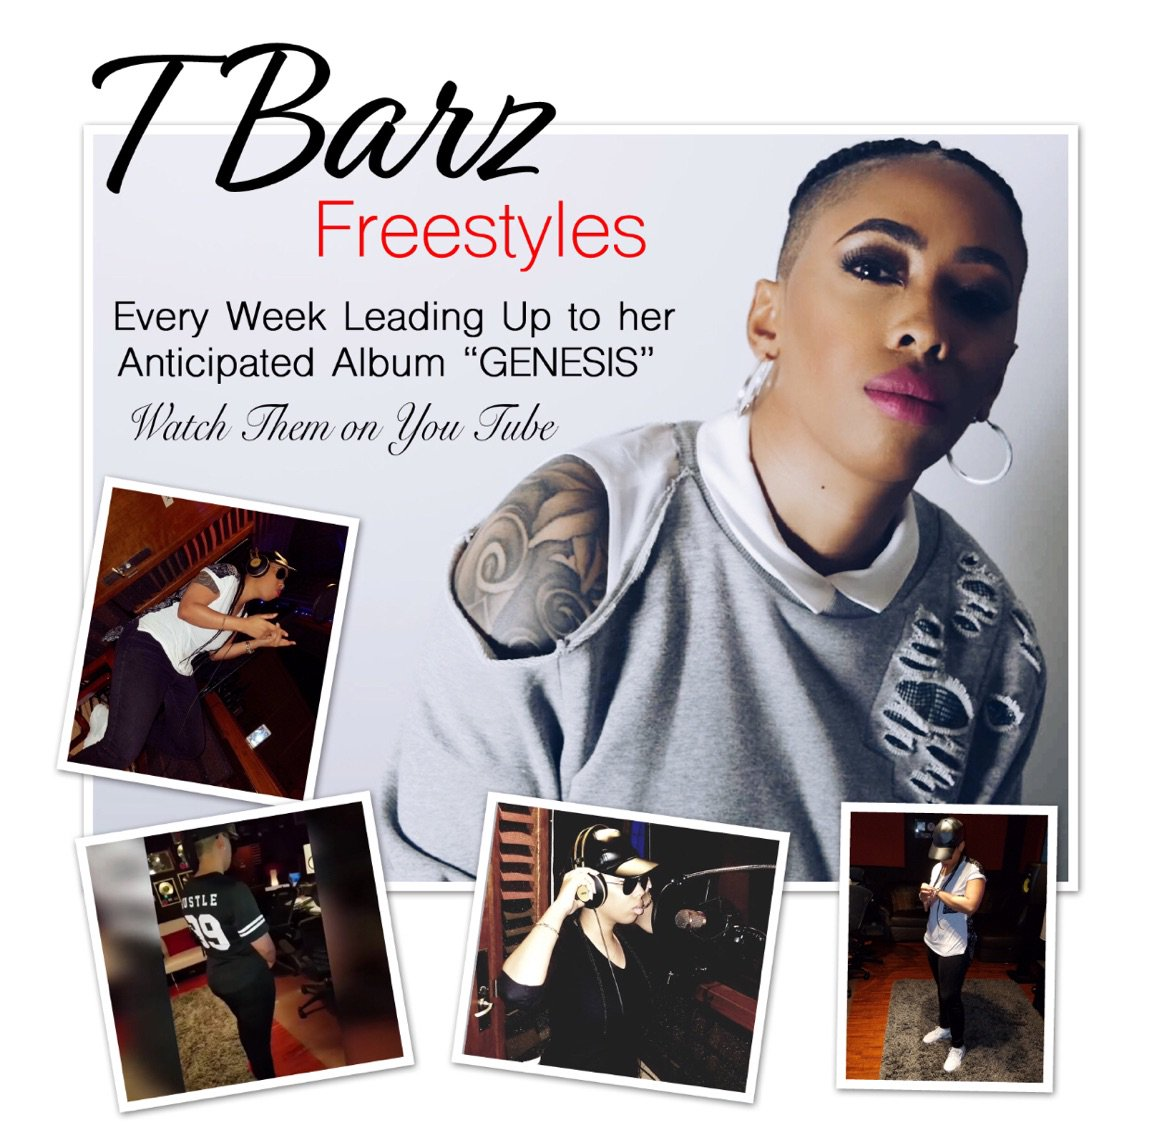 BSE Recordings Artist T BARZ @TBarzzzz Delivers real #hiphop Every week on Thursdays.. T BARZ the Best Female Rapper in the Game Today! #YouTube #SoundCloud #Spotify #iTunes #Alabama #LosAngeles #London #NYC #Cardi #Nicki #Radio #DJs